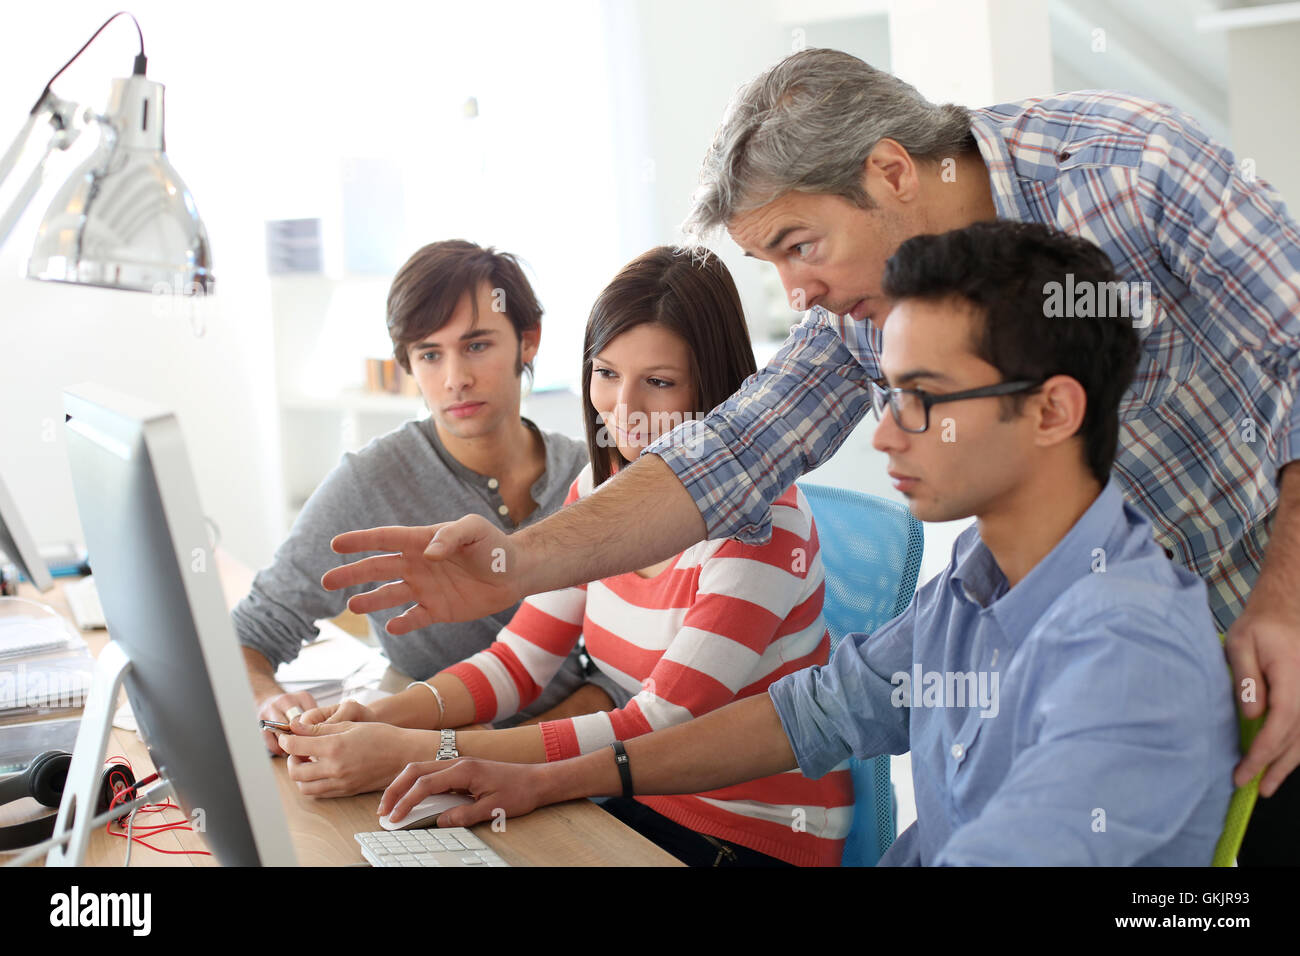 Teacher with students working on desktop - Stock Image